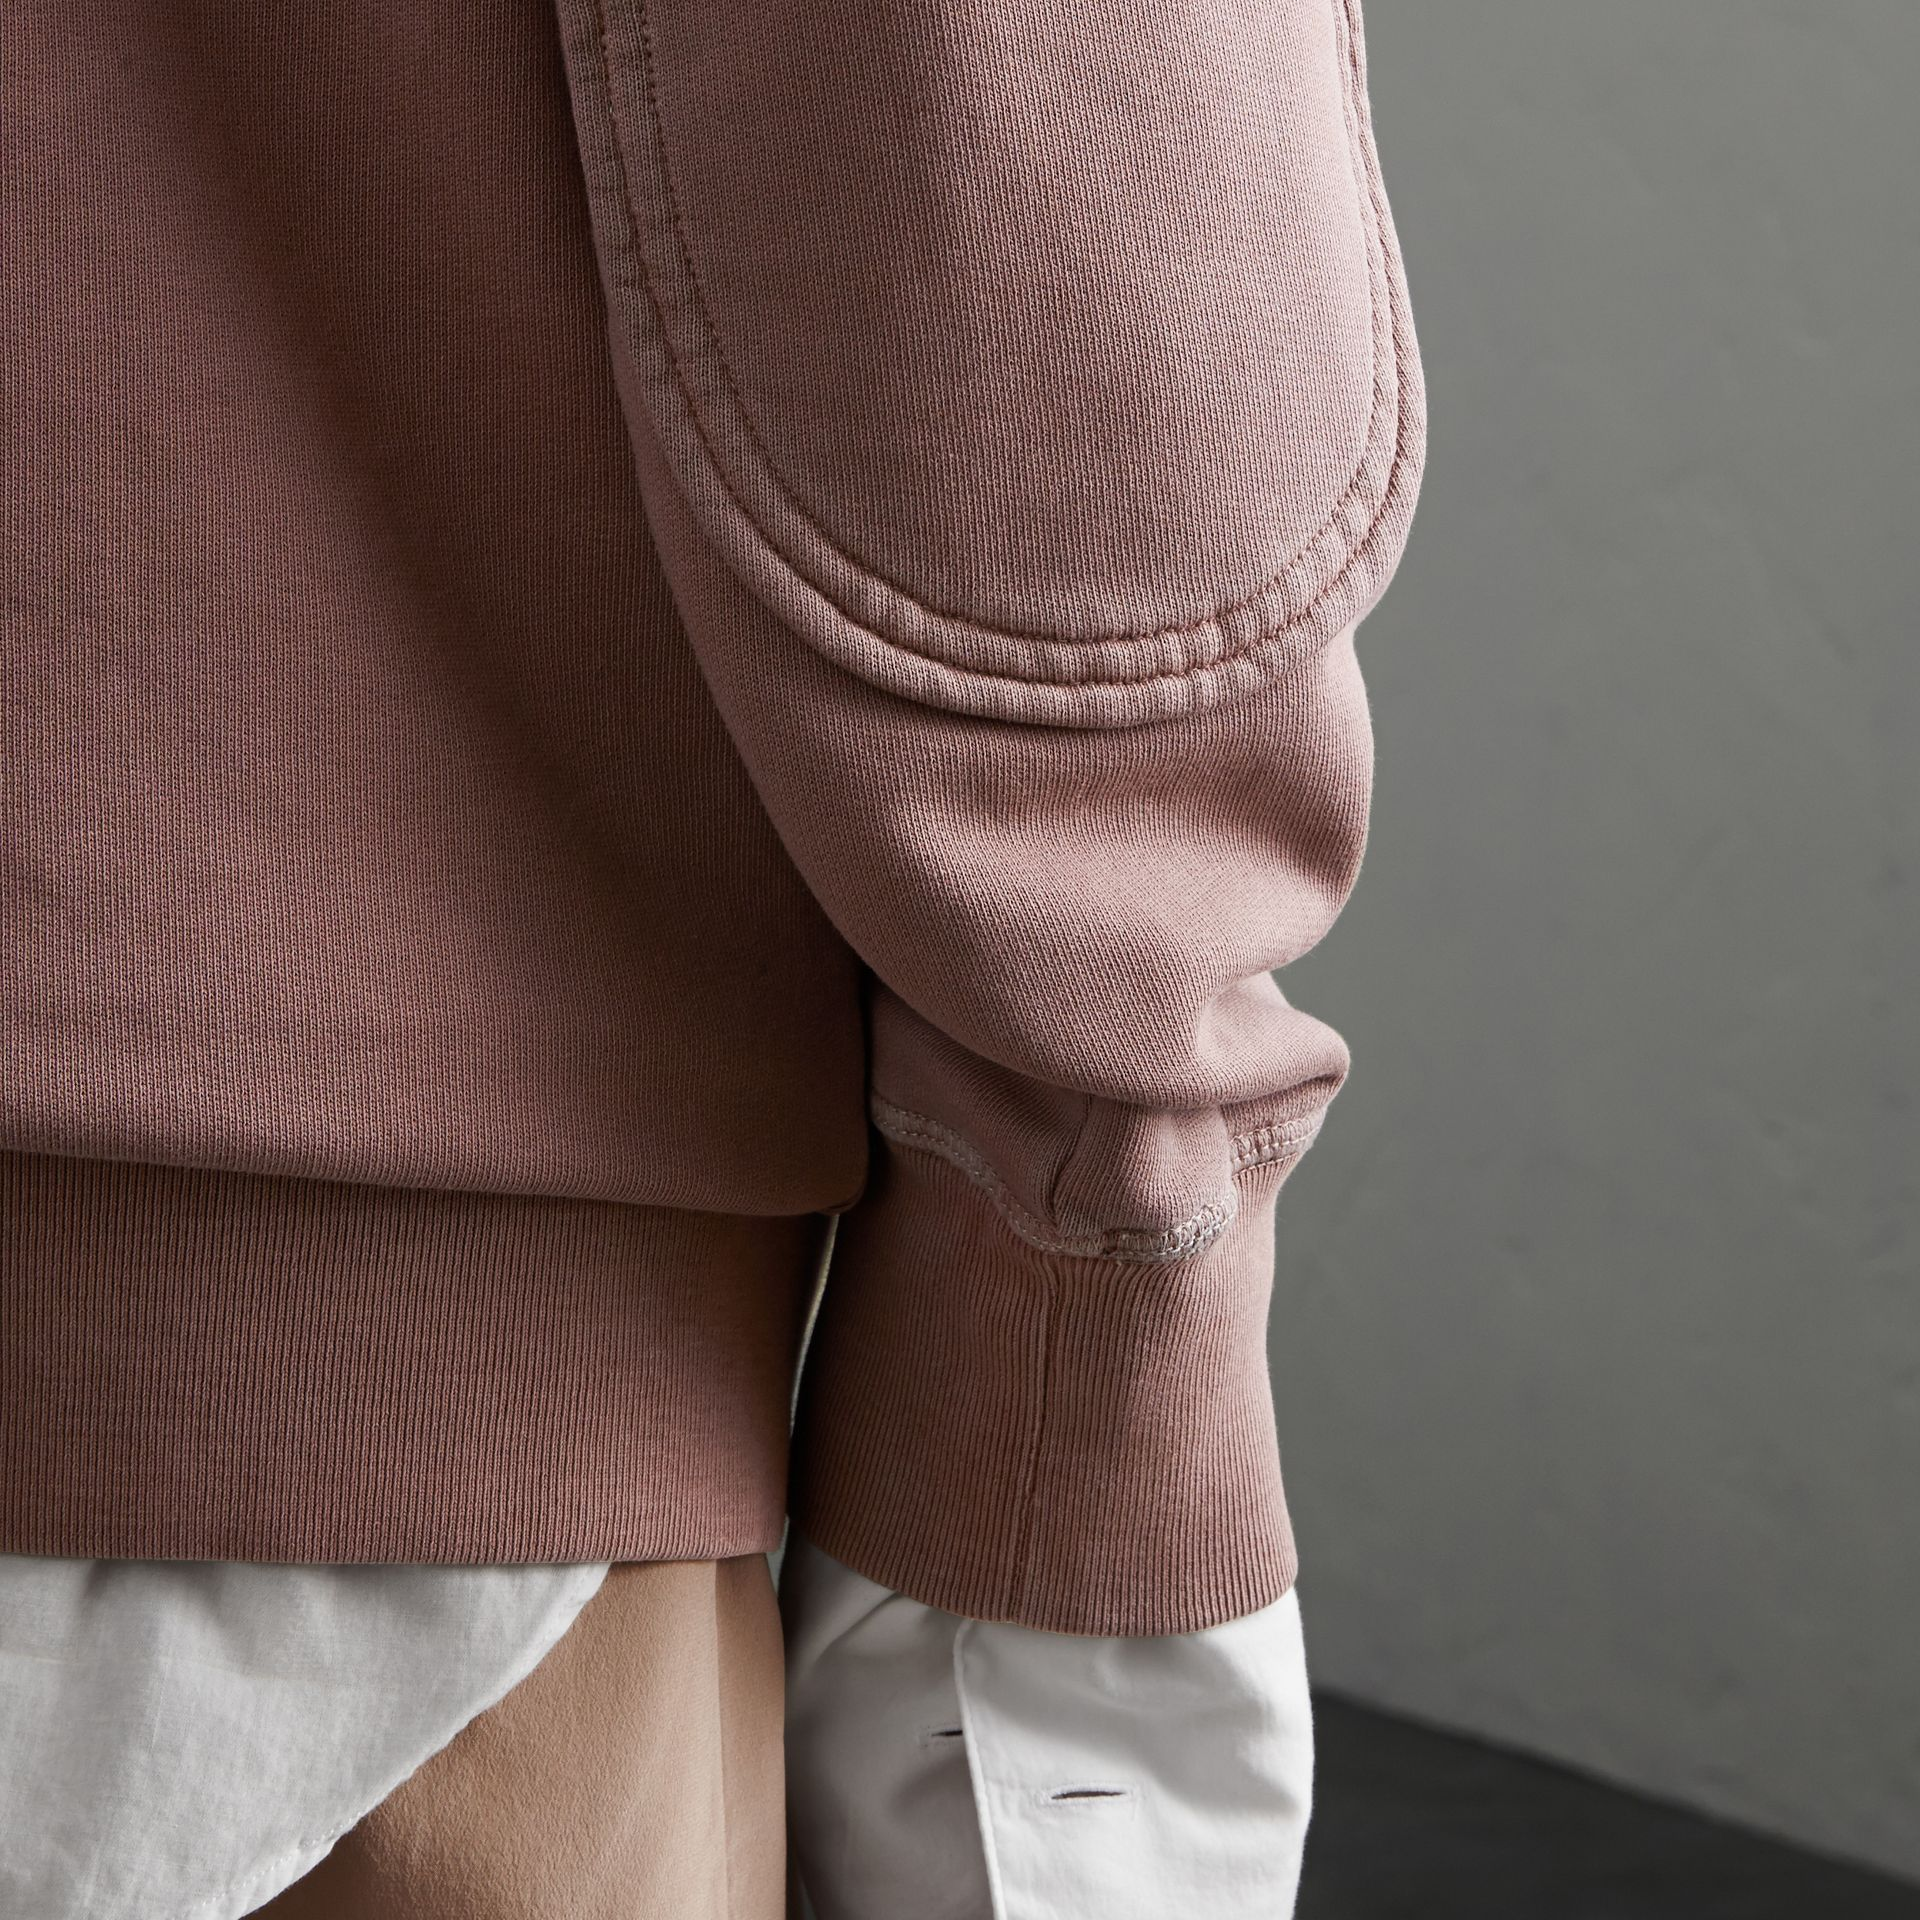 Unisex Pigment-dyed Cotton Oversize Sweatshirt in Dusty Mauve - Women | Burberry - gallery image 4